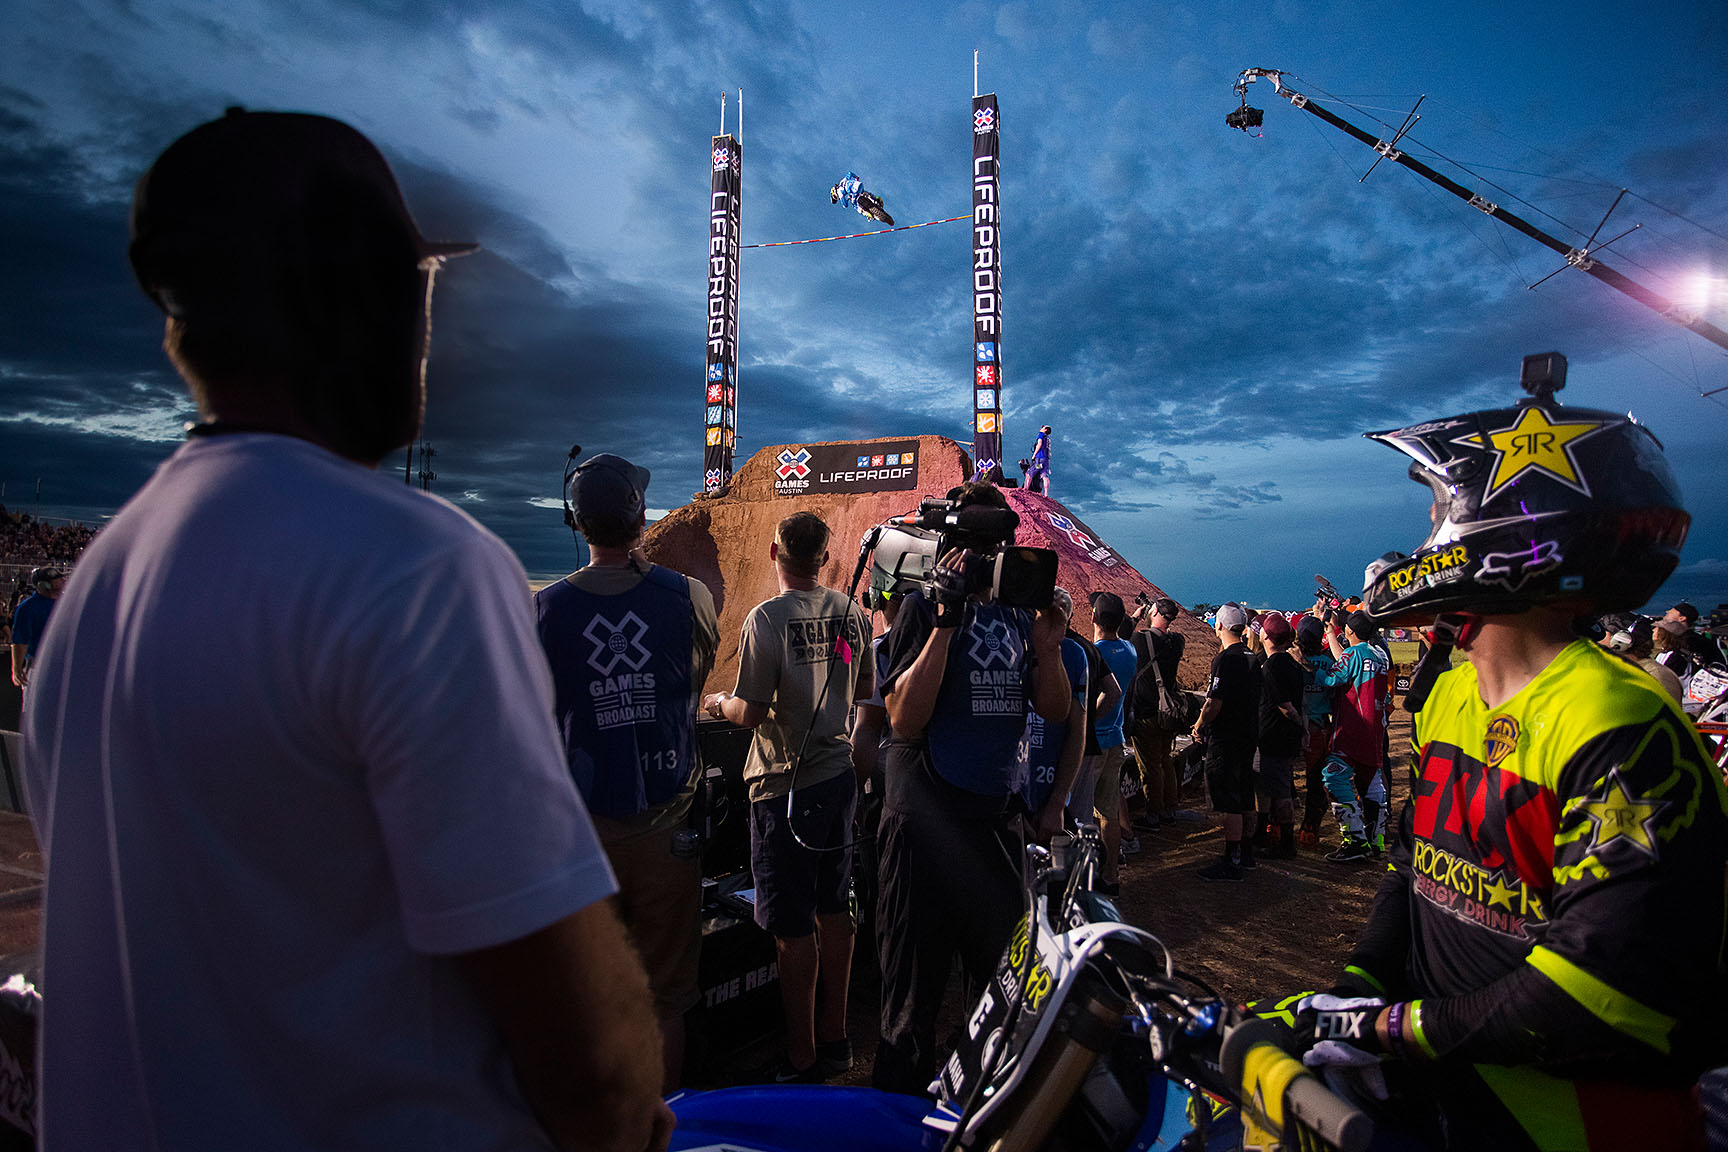 Seven-time Step Up gold medalist Ronnie Renner was favored to win the first event of X Games Austin 2016, but he stopped at the 30-foot-mark and ended the night tied with Bryce Hudson for fourth place. Meanwhile, Jarryd McNeil, pictured jumping, and Libor Podmol, sitting far right, tied for gold with 33-foot jumps, and Massimo Bianconcini came in at 32 feet to clinch the bronze.